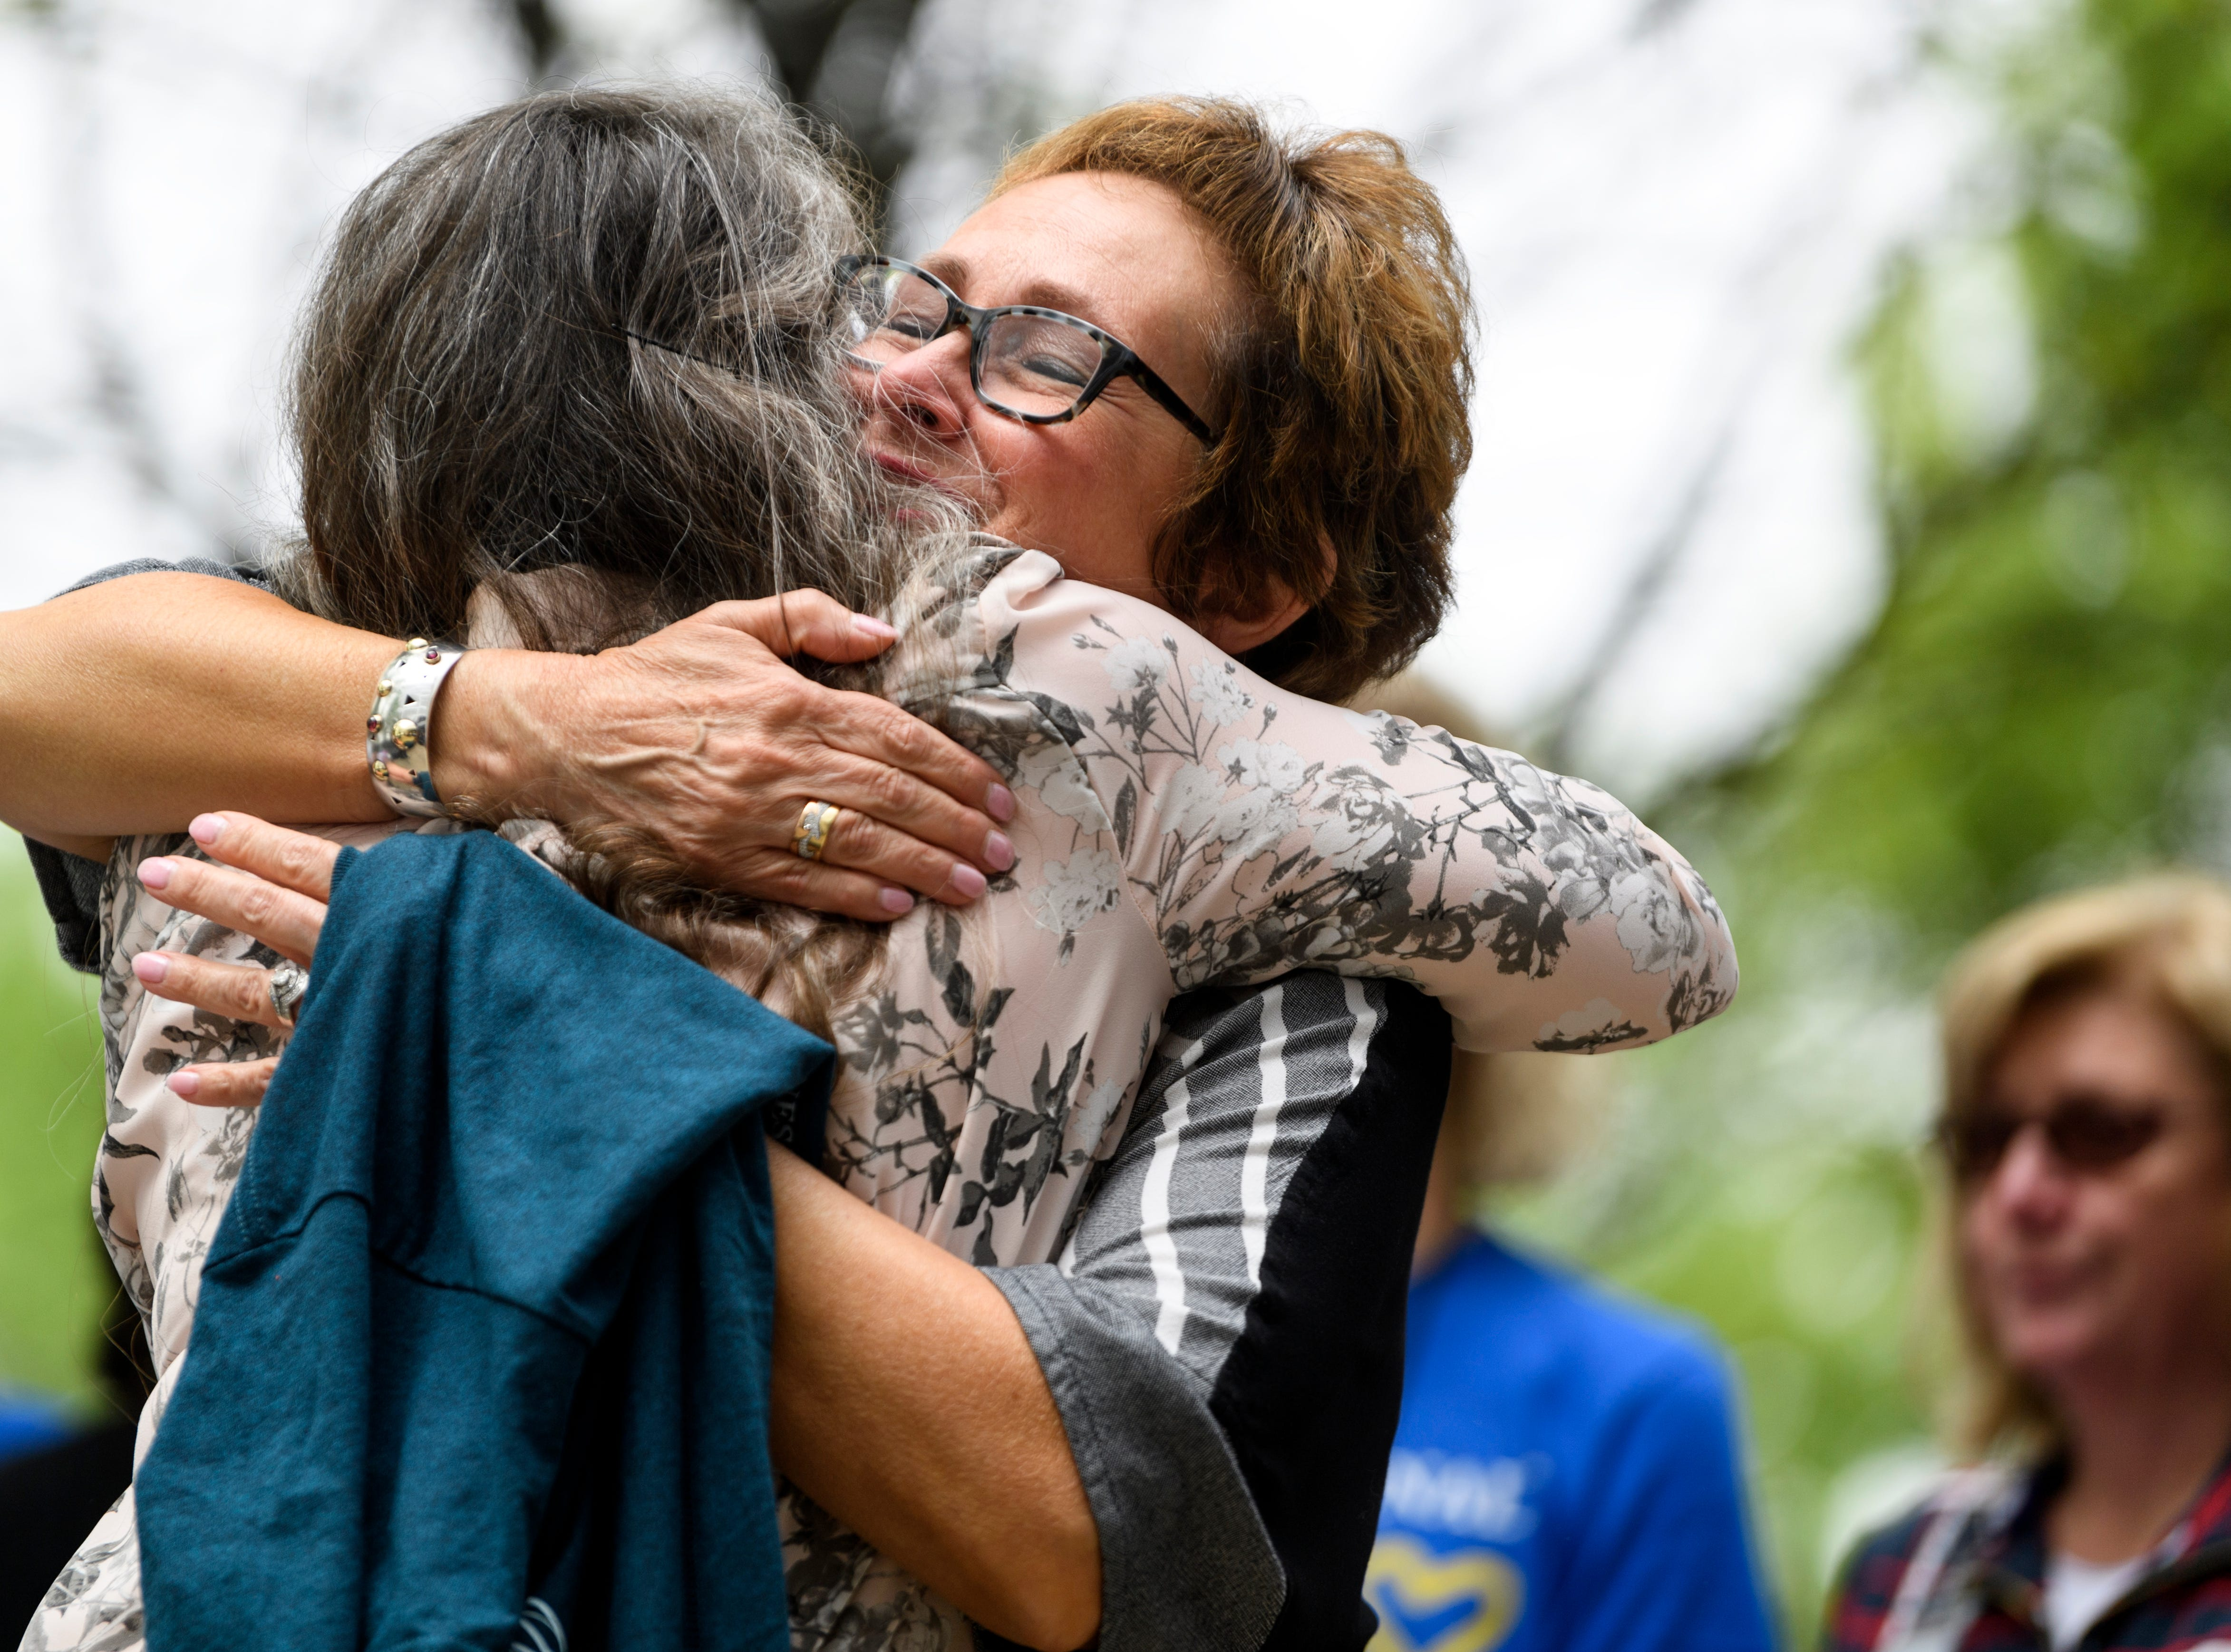 Youth Resources Executive Director Laura Ferguson, front, embraces Lisa Jones, back, wife of retiring Old National Chief Executive Officer Bob Jones, during a farewell party for Jones at Old National Bank in downtown Evansville, Ind., Friday, May 3, 2019.